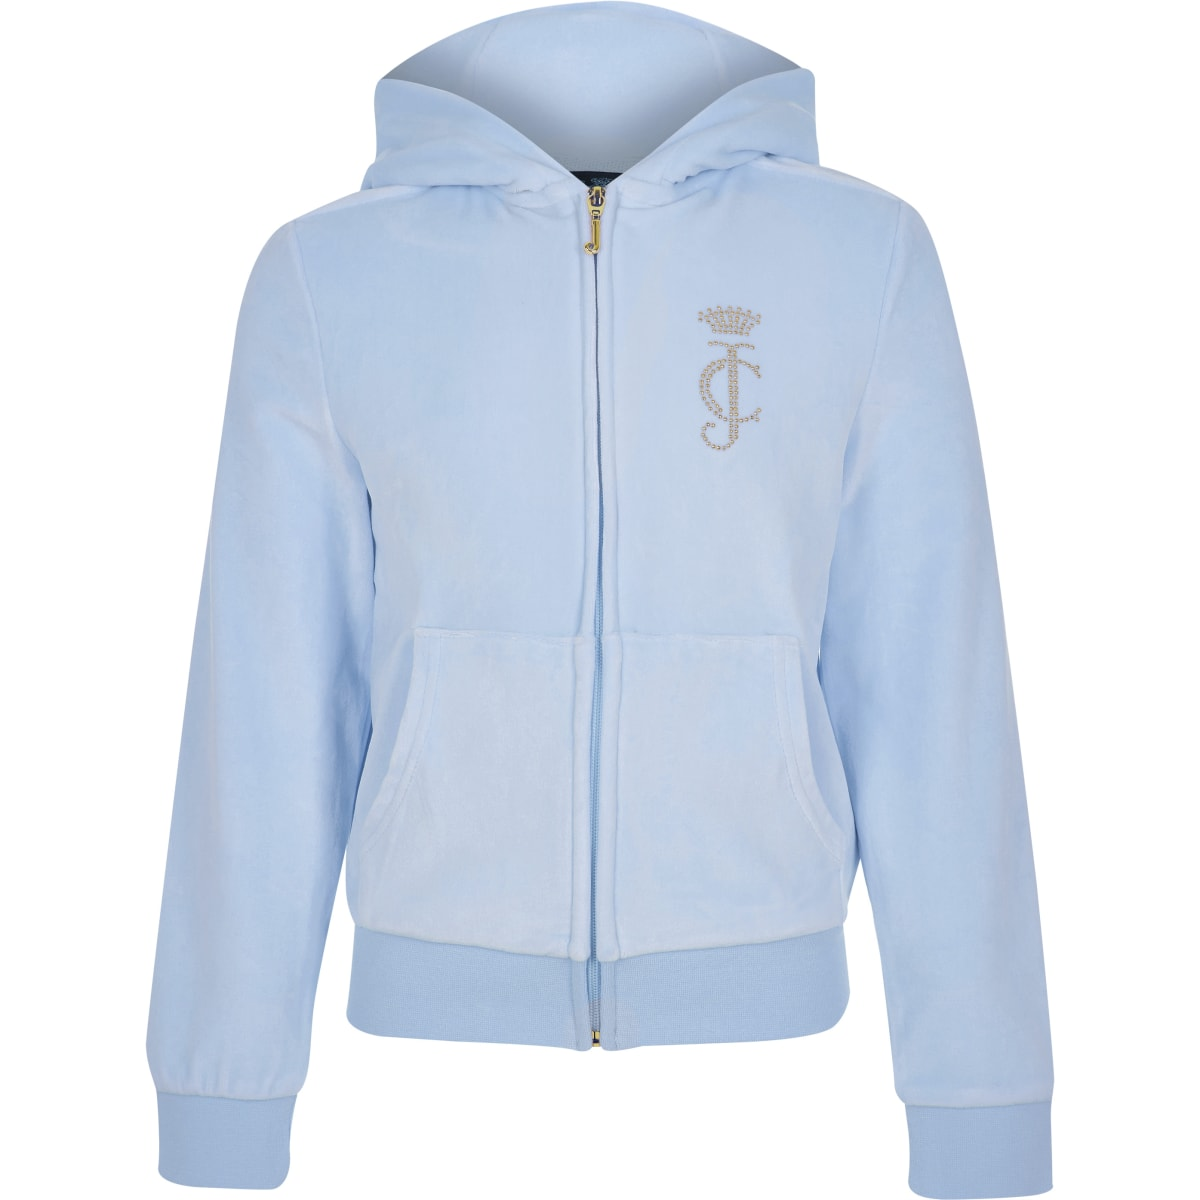 Girls Juicy Couture light blue track top